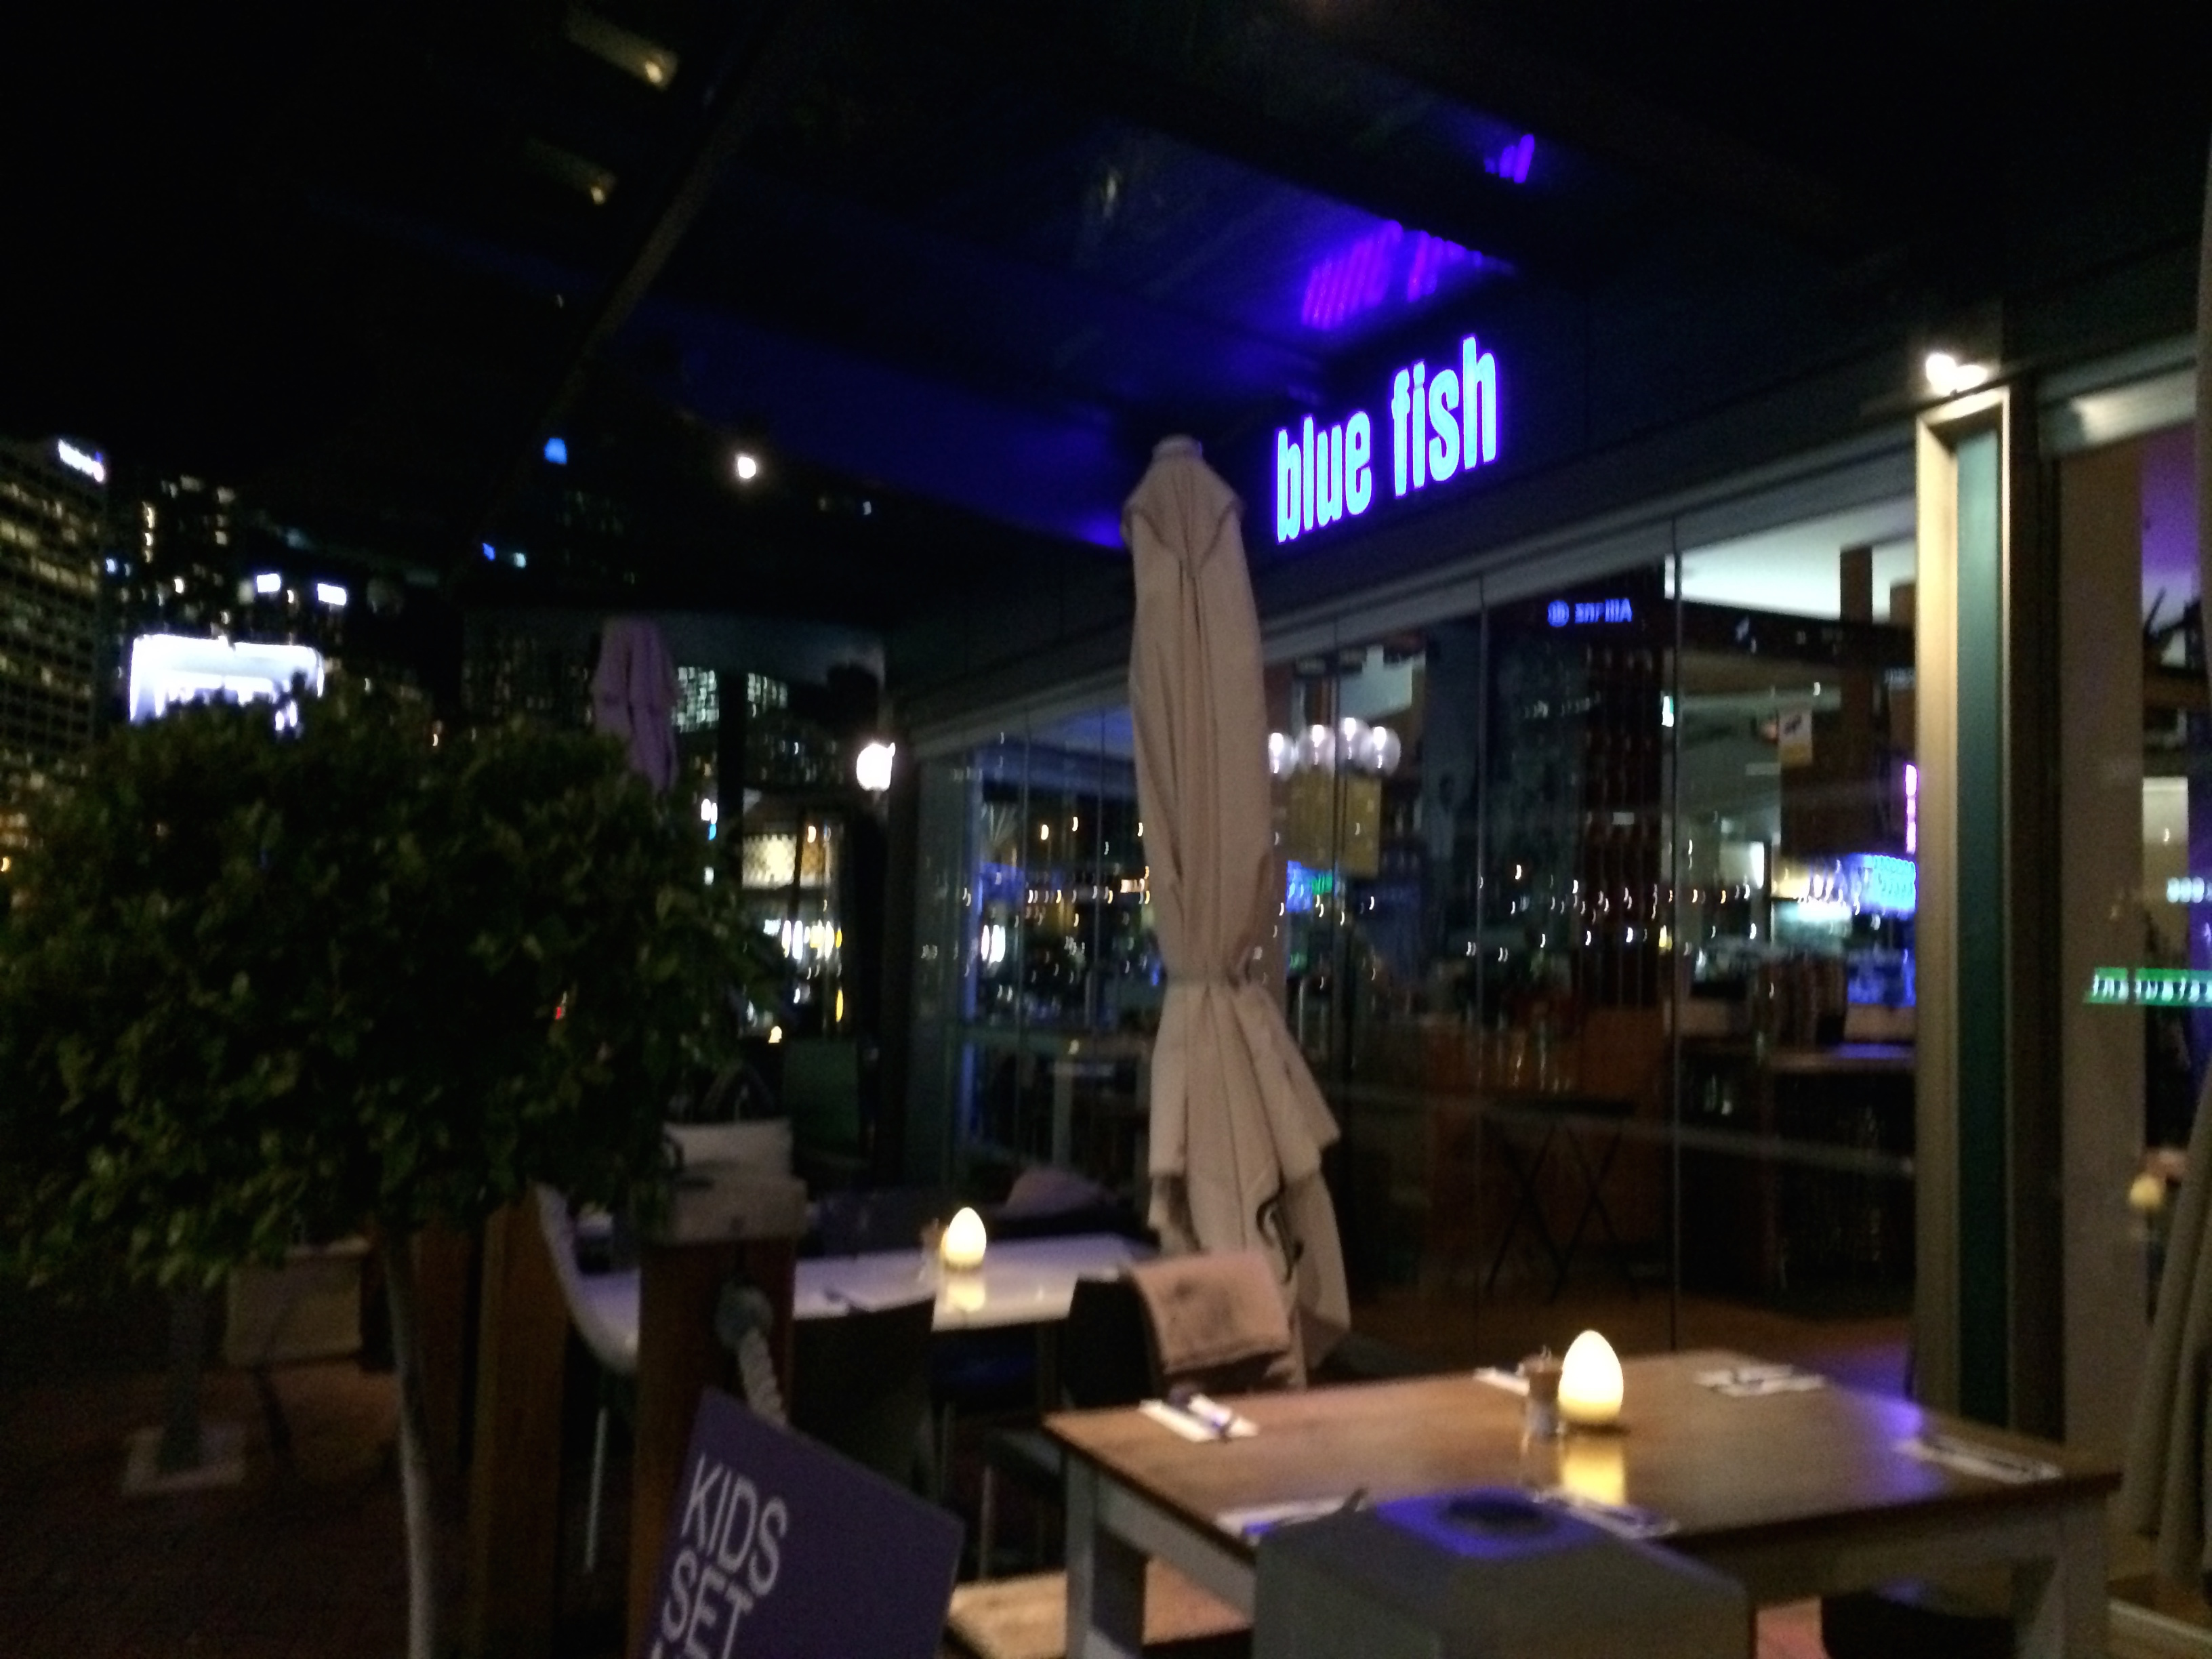 Blue fish restaurant darling harbour sydney for The fish restaurant